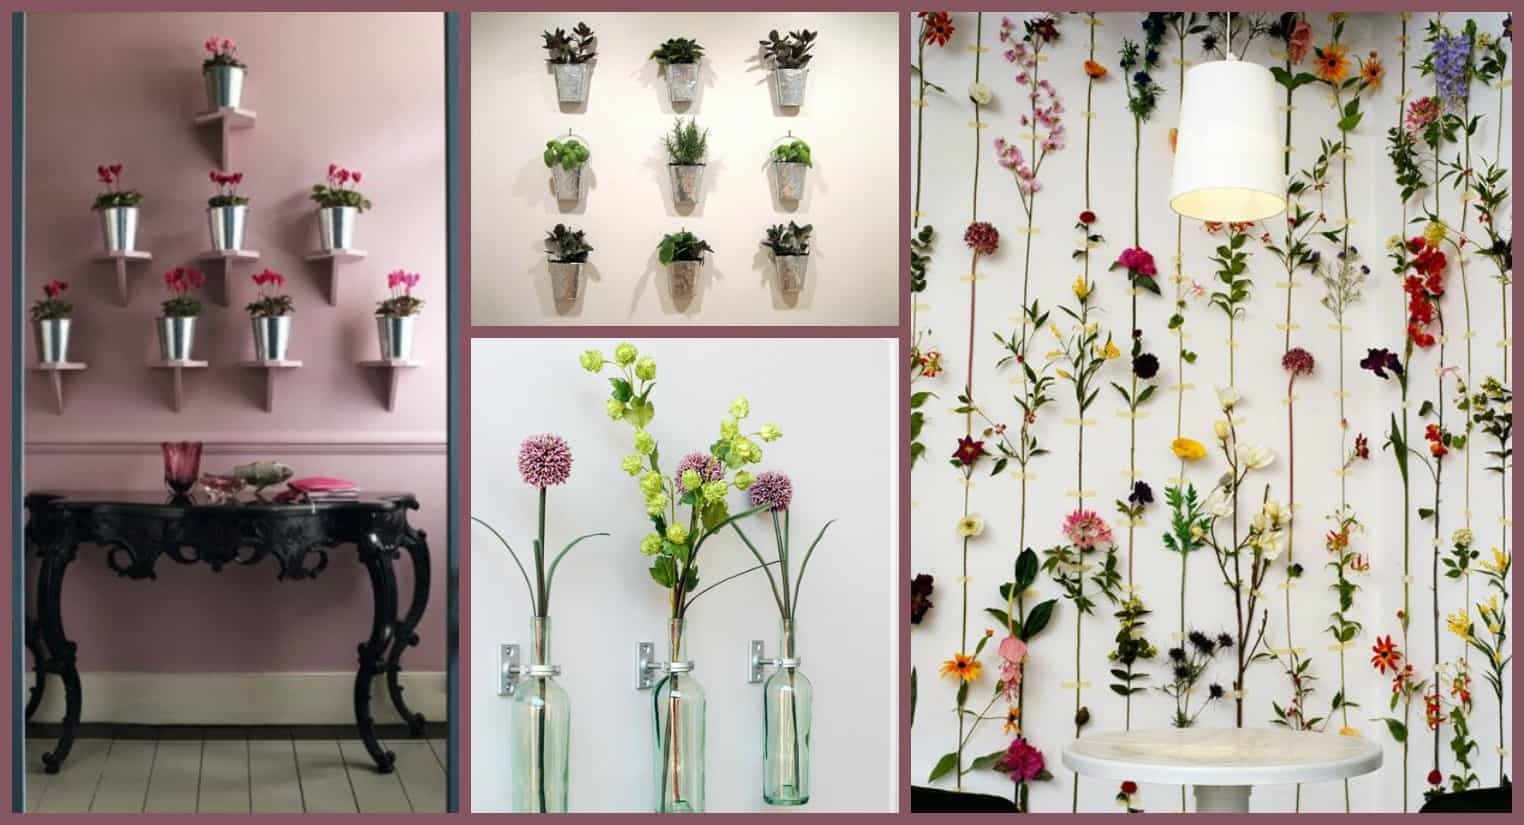 Diy 10 idee su come decorare una parete di casa for Idee per arredare una parete